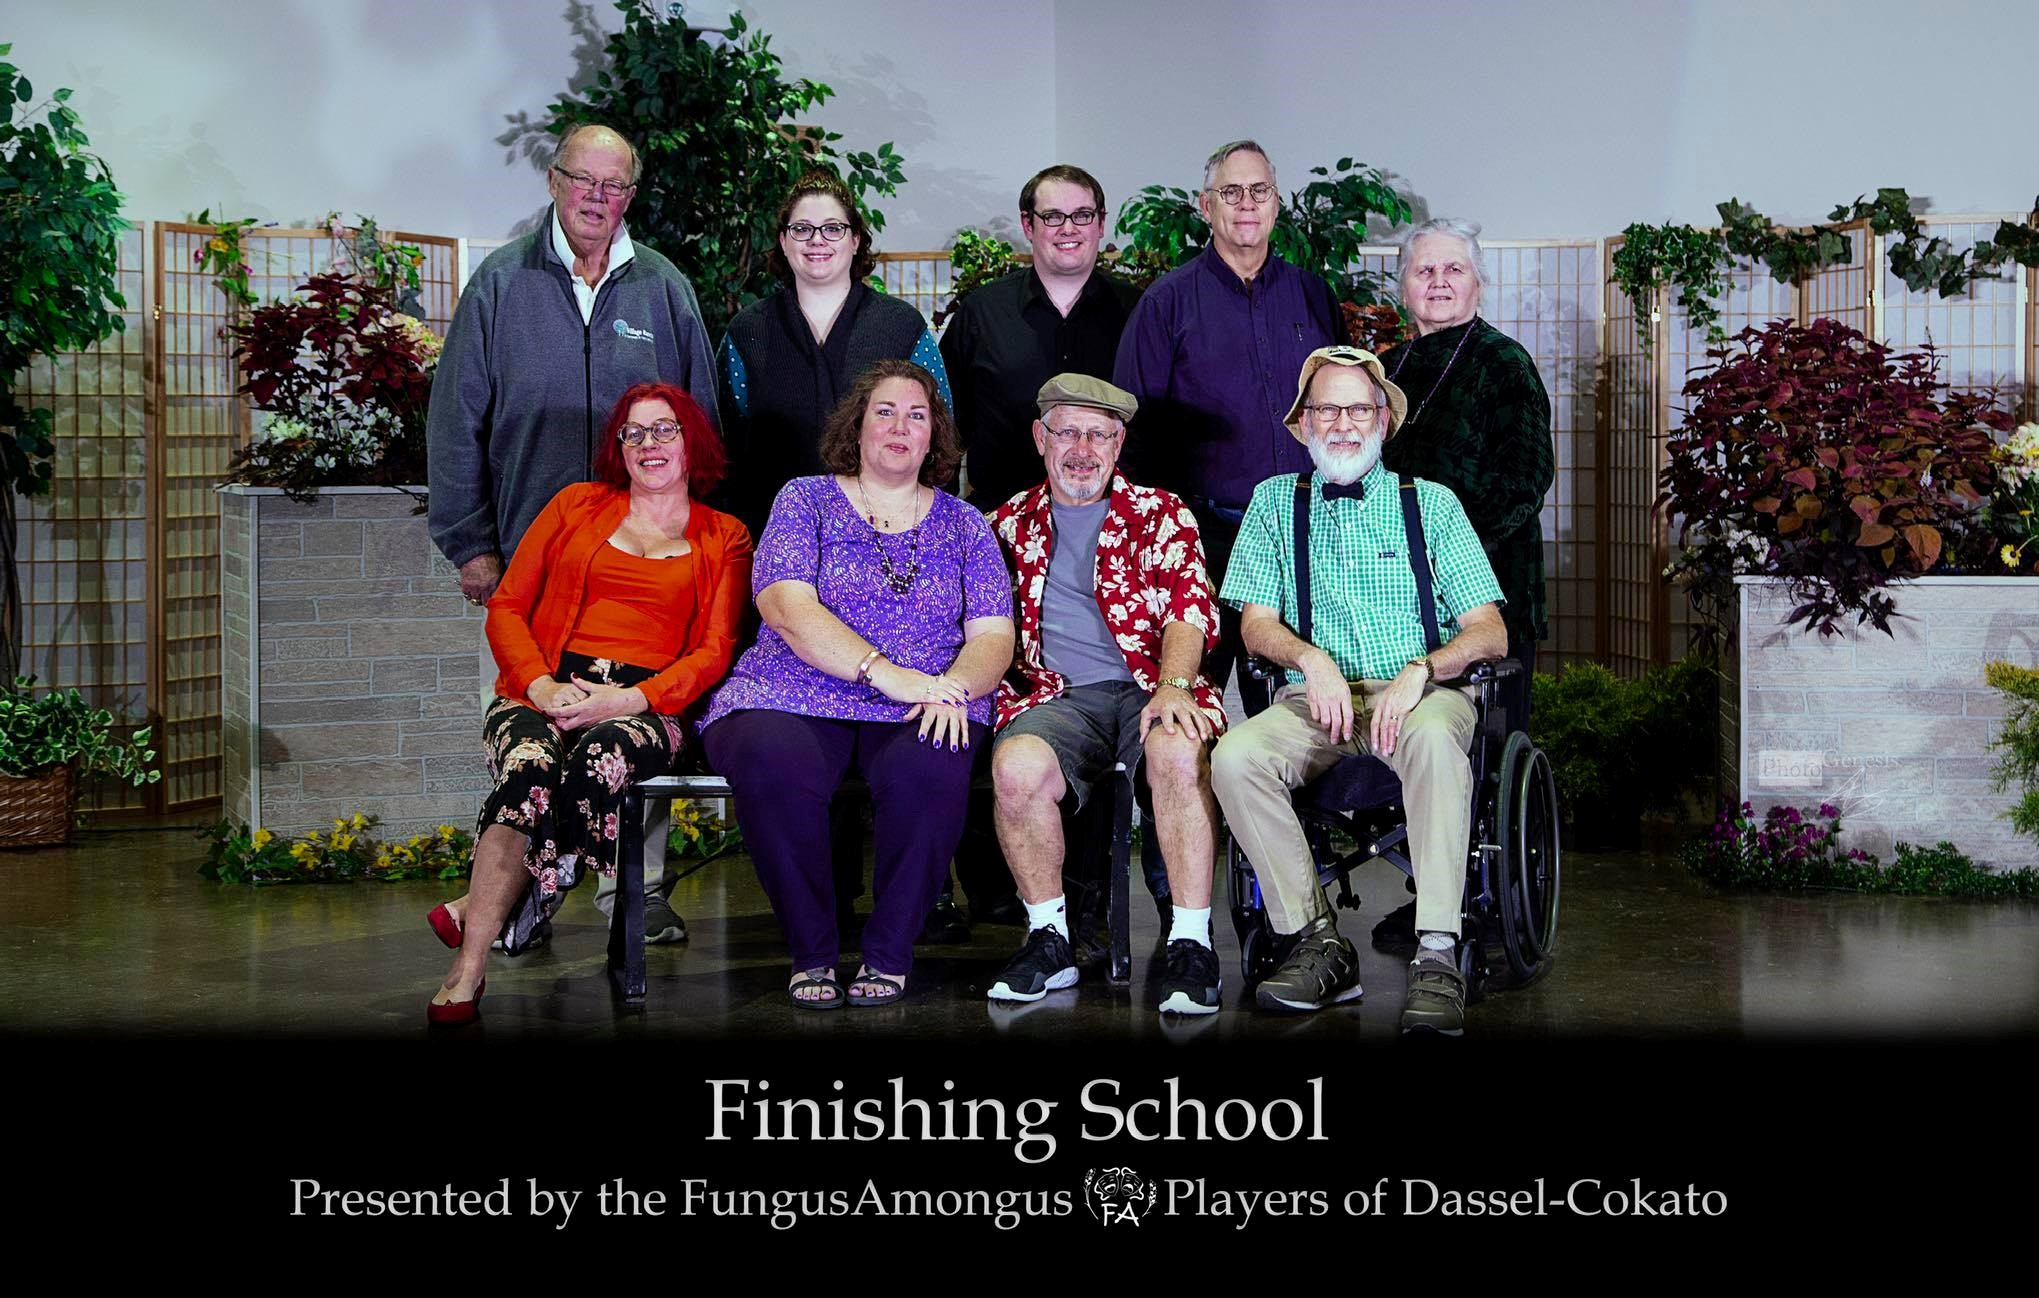 Finishing School - by Elaine LinerDirected by Linda MetcalfOctober 2018Pictured from Left to Right: (Front) Katrina Vaara, Lisa Kotila, Jon Benson, Ron Hungerford (Back) Butch Amundsen, Elisabeth Nelson, Tom Nelson, Terry Moore, Linda Metcalf